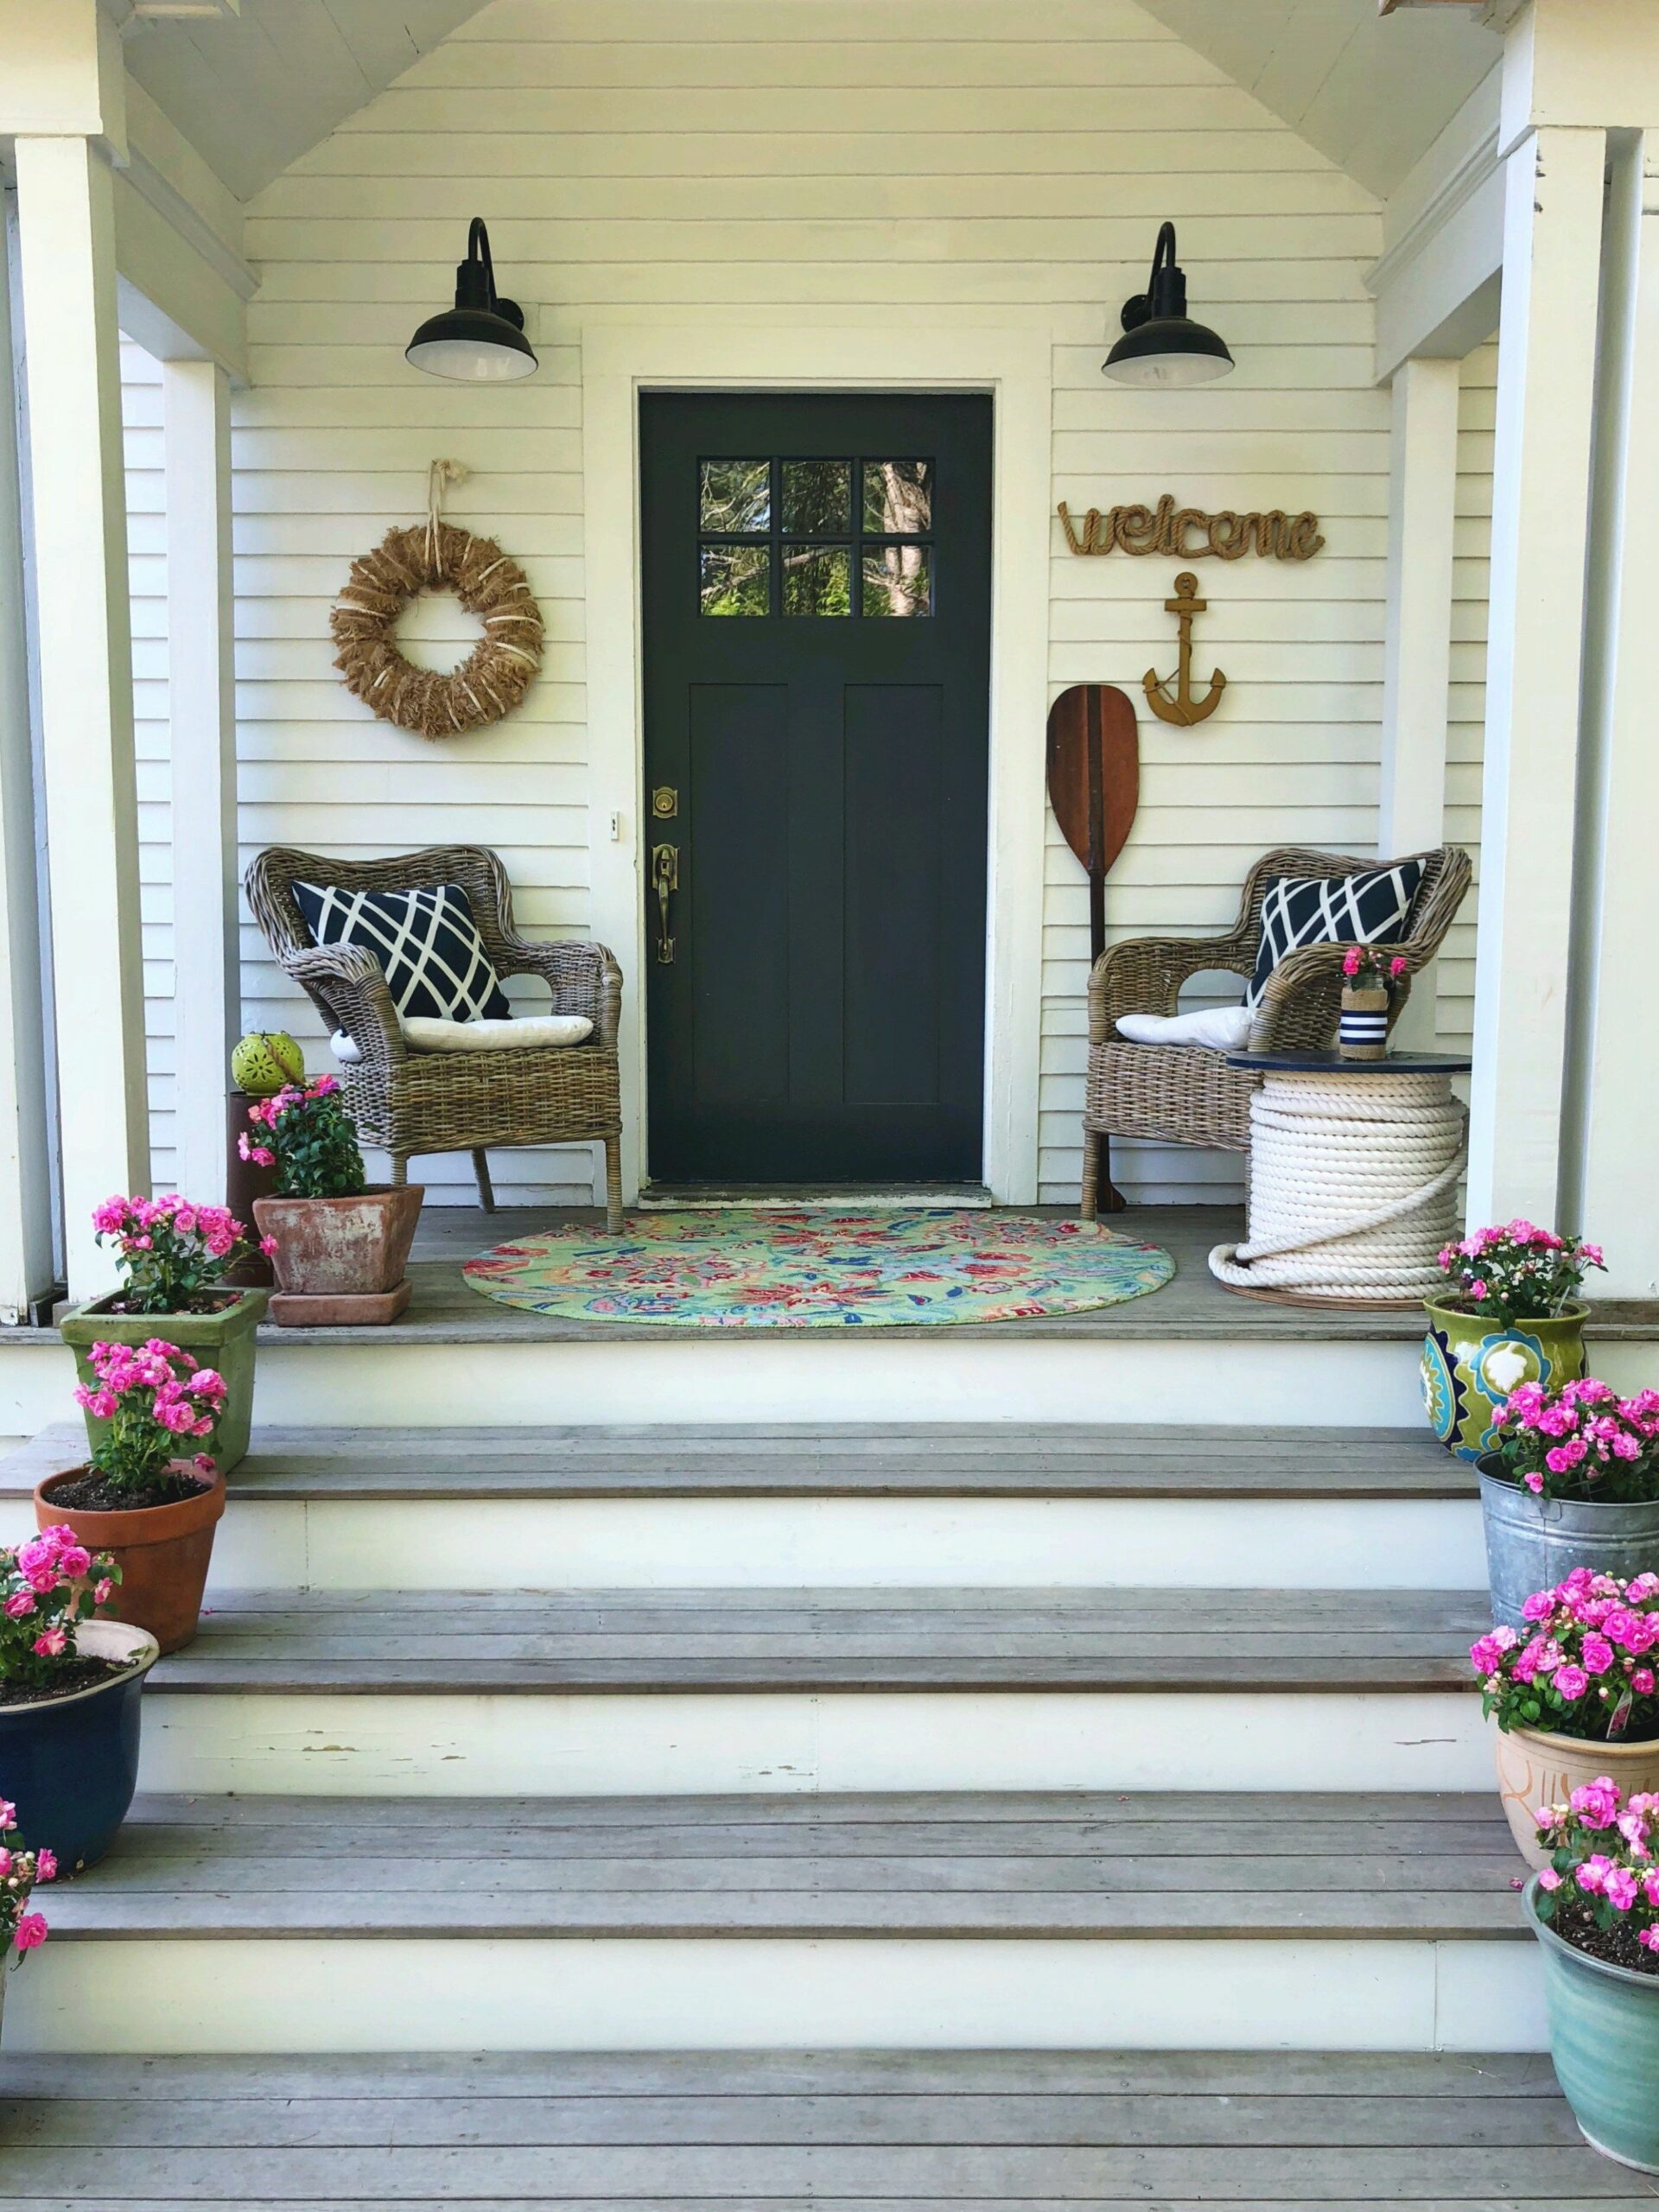 My Front Porch at the Beach House (With images) | Beach porch ...